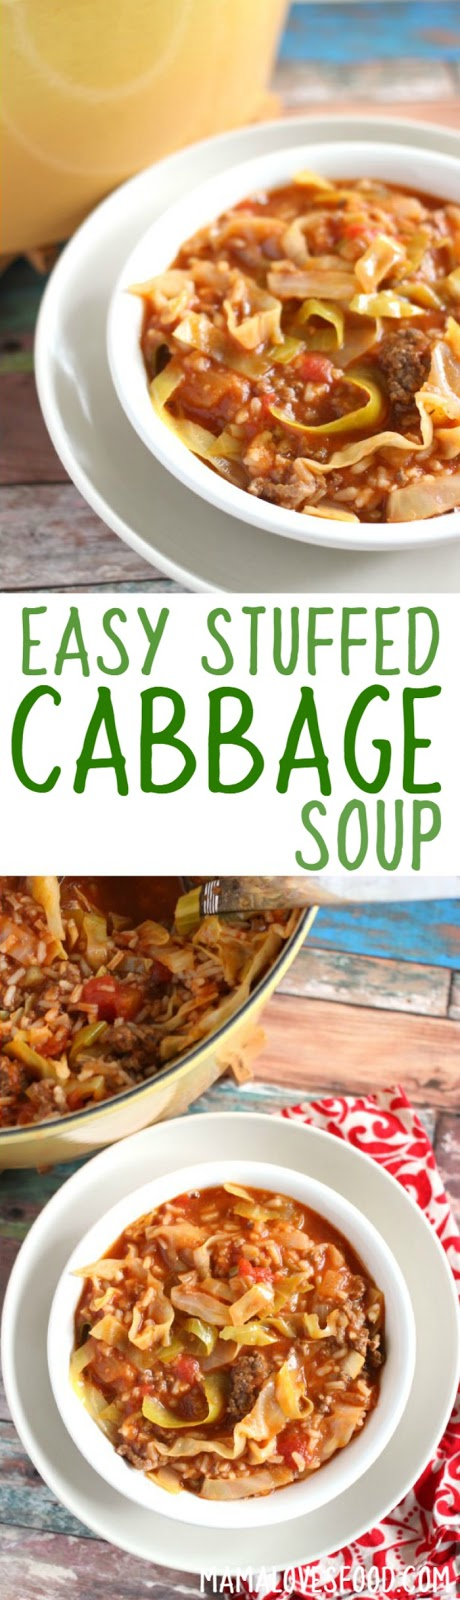 recipe for stuffed cabbage soup